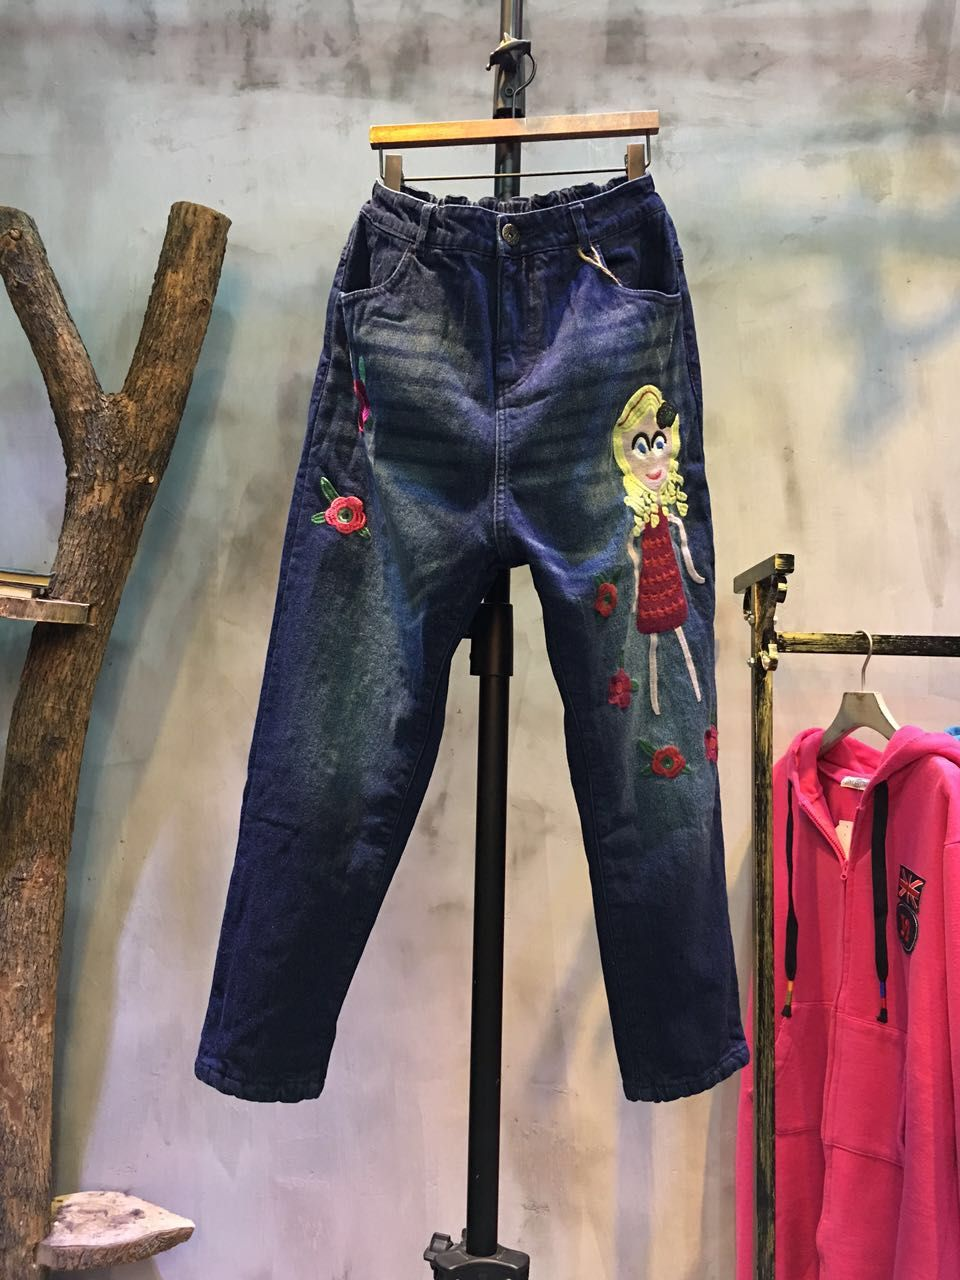 769b45f715e Girl And Rose Embroidery Fashion Jeans Womans Baggy Jeans  rose  embroidery   baggy  jeans  fashion  pants  trousers  bottoms